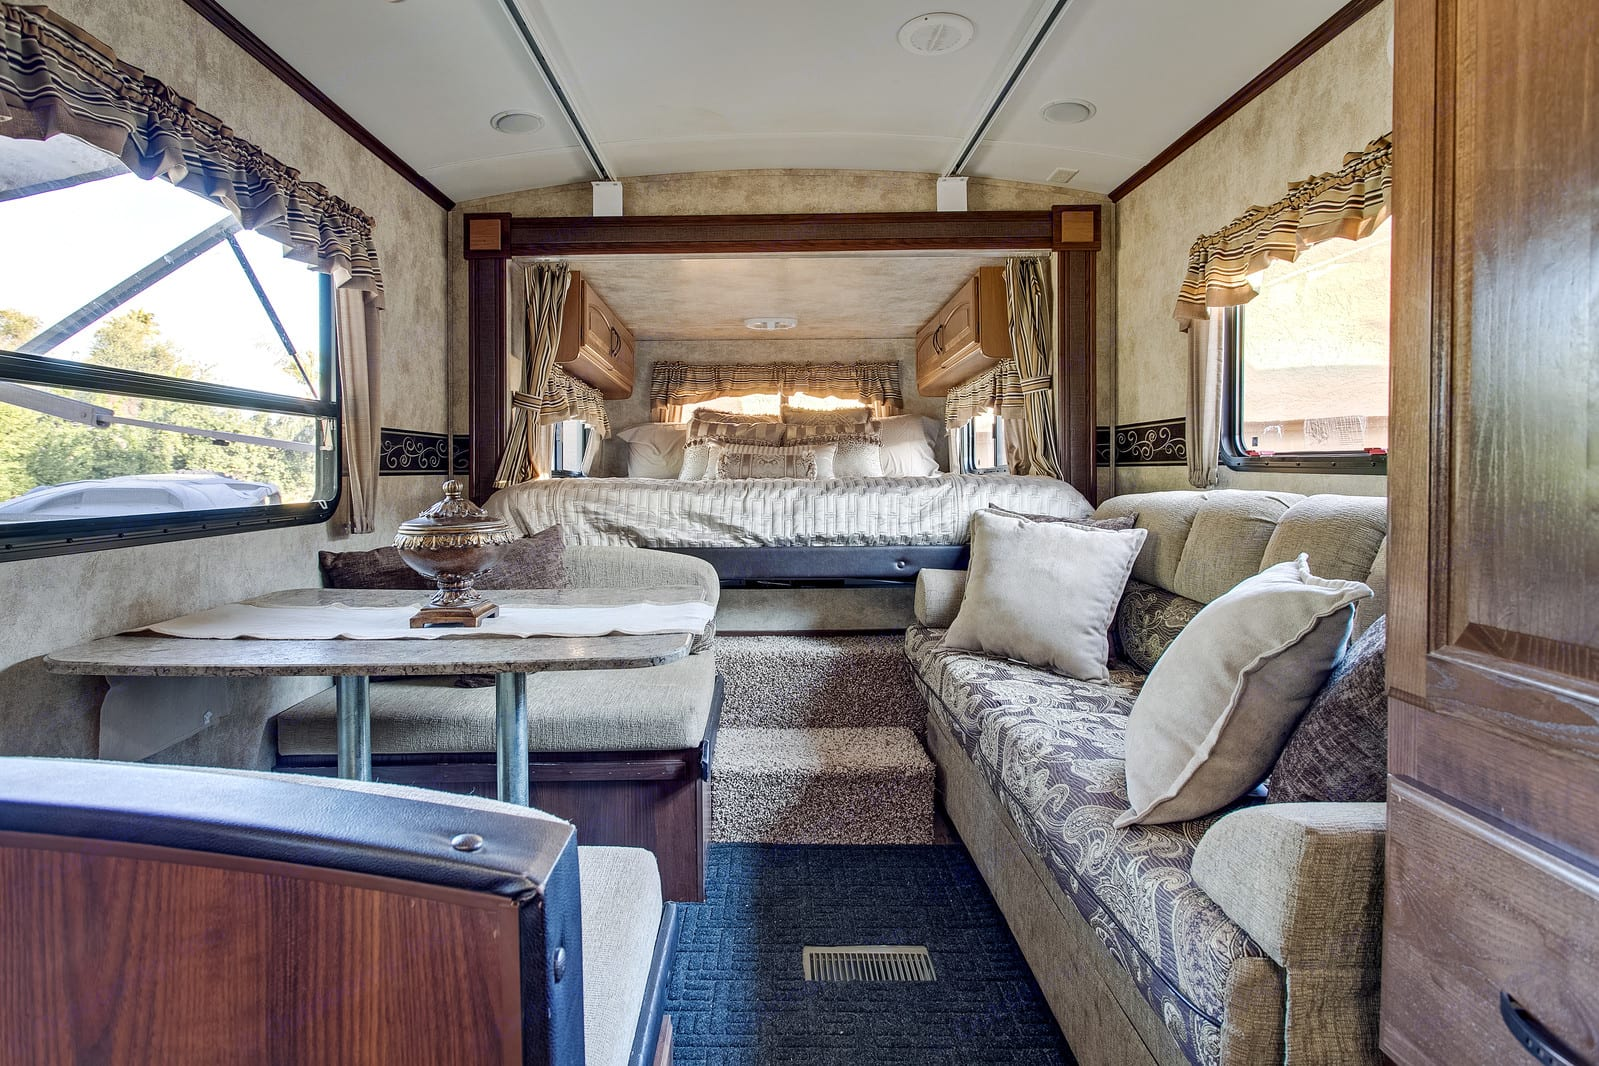 King Size bed with dinette (converts to sleeper) and sleeper sofa. Keystone Outback 2013